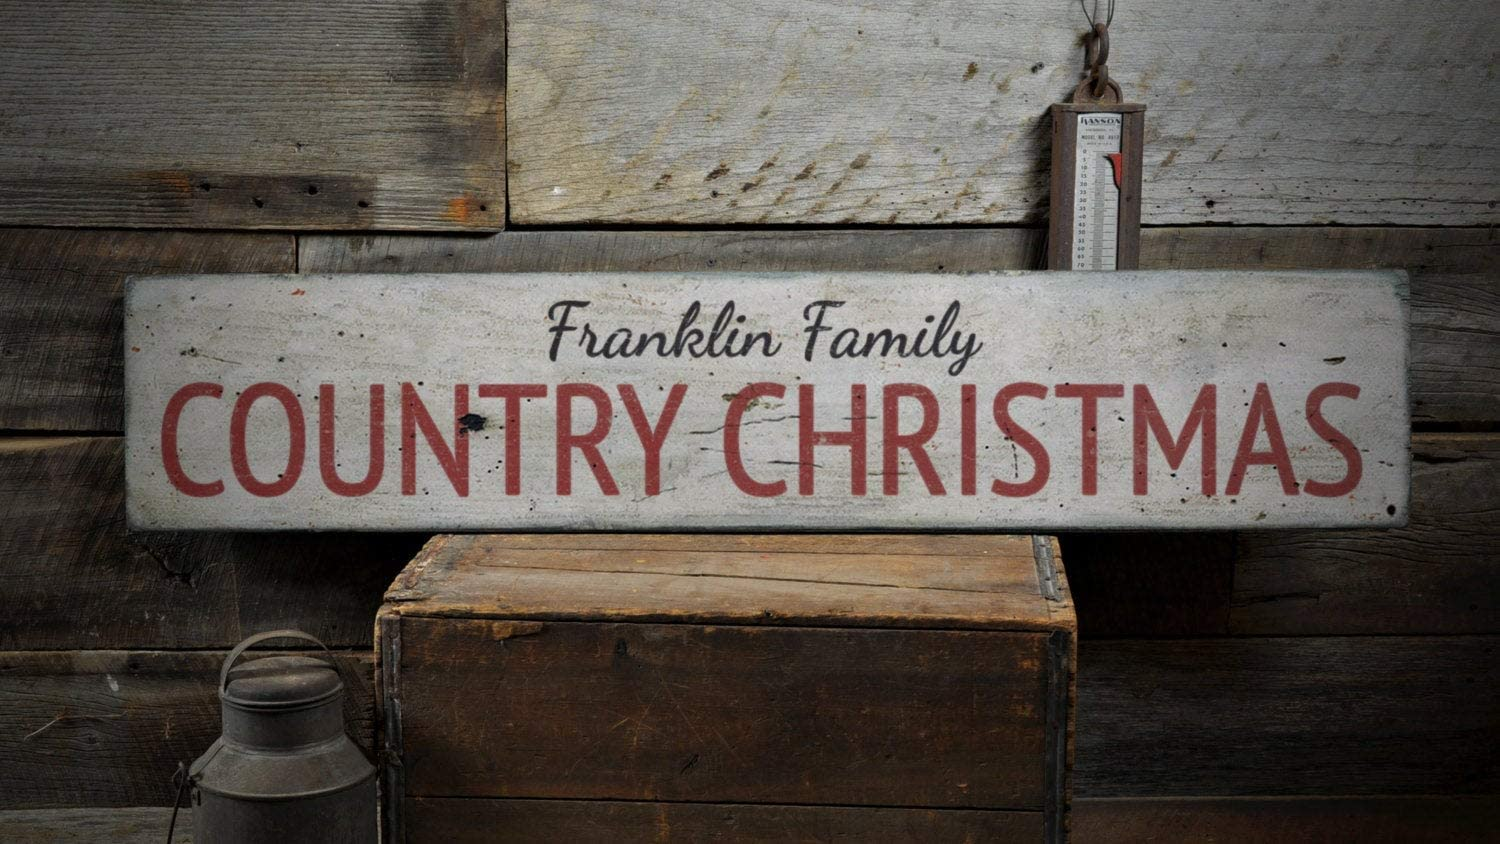 Country Christmas Wood Sign, Custom Family Last Name Home Holiday Farmhouse Gift Home Decor - Rustic Hand Made Vintage Wooden Sign Home Decor,Produced in The U.S.